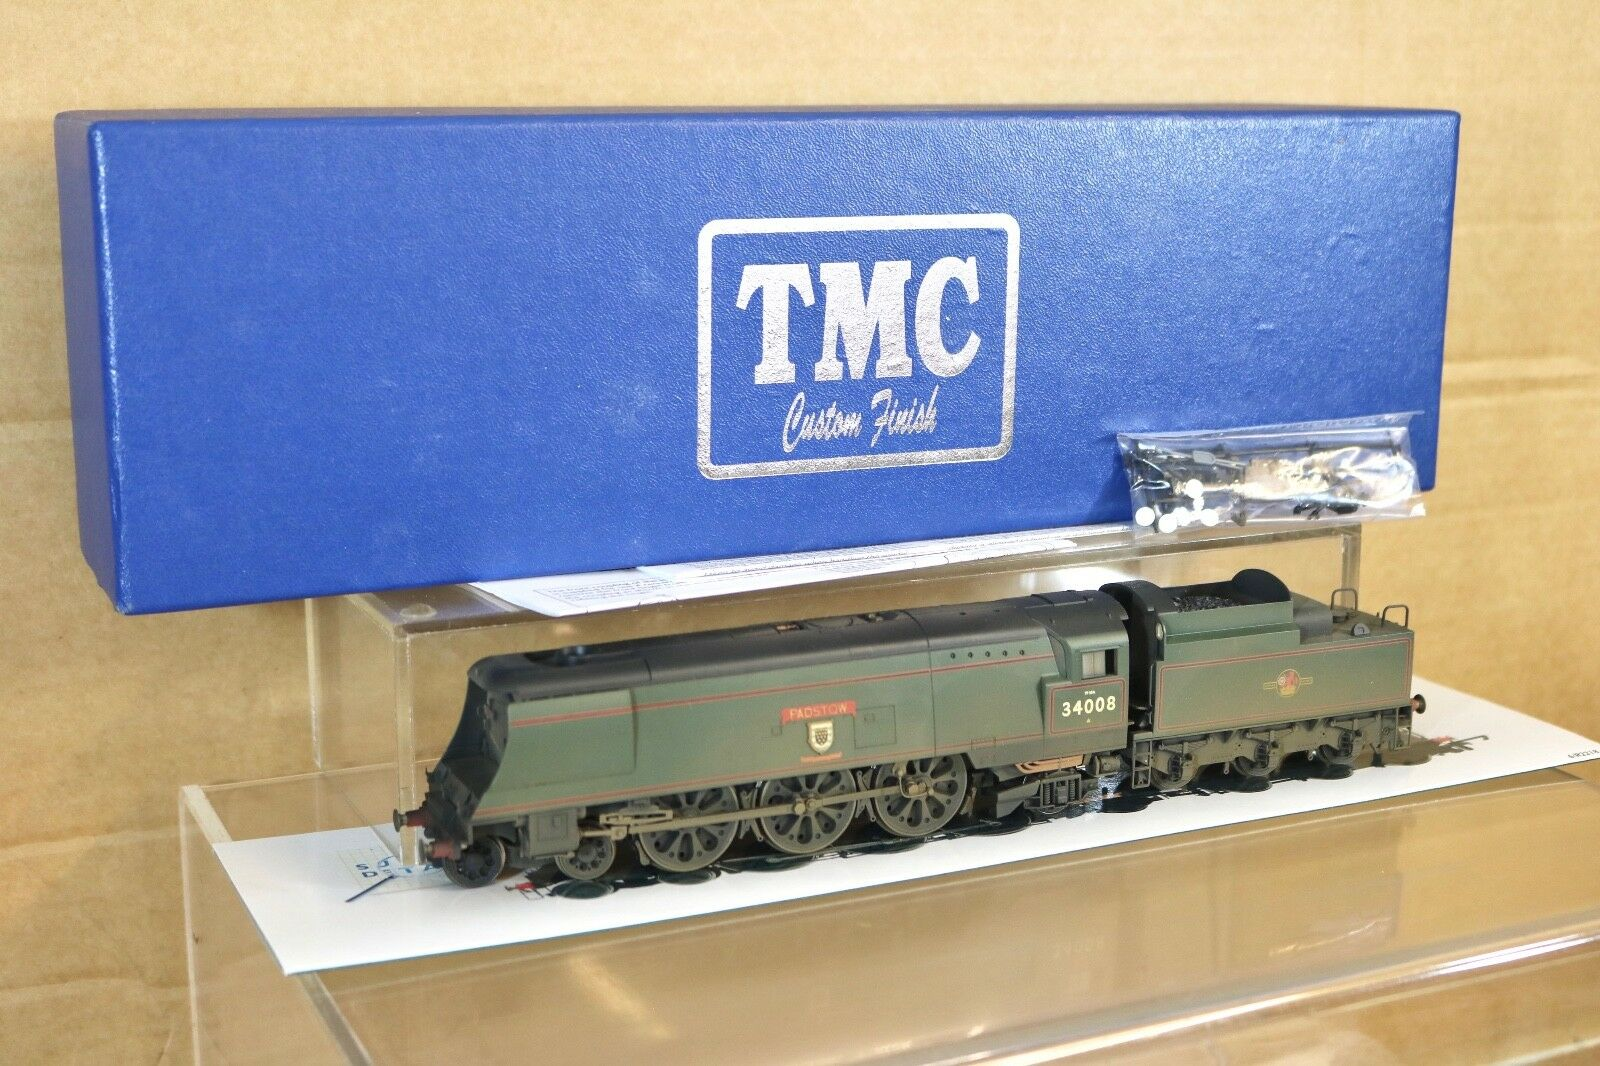 ORNBY R218 TMC WEATHEED RENAMED DCC BR 4-6-2 WEST PAESE LOCO 34008 PADSTOW